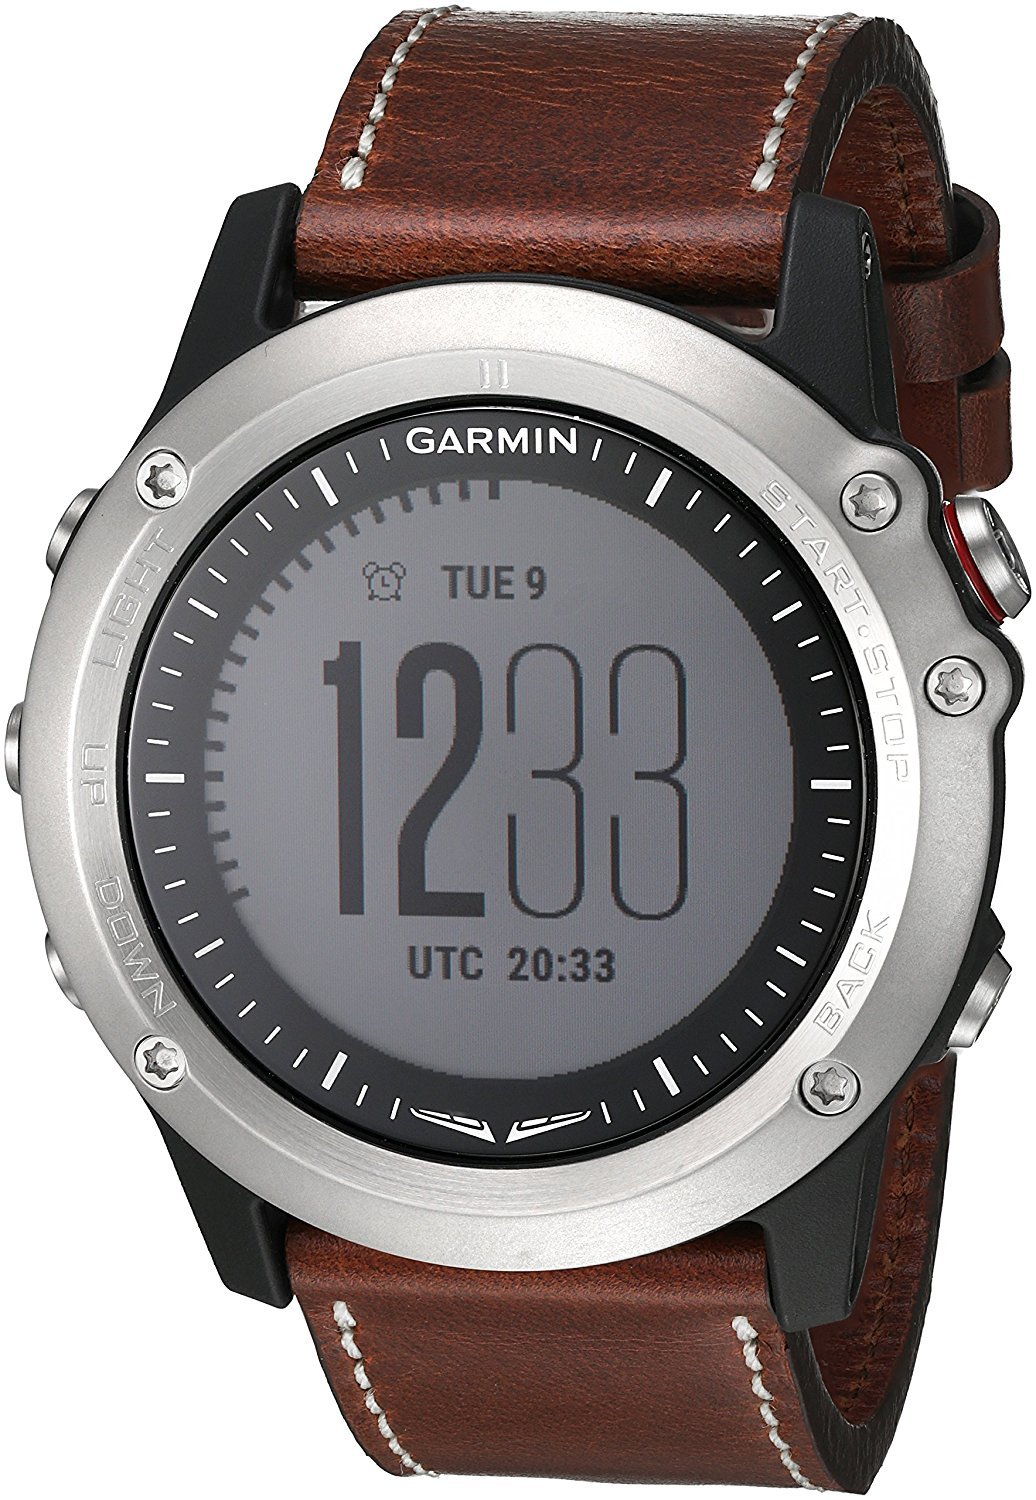 Garmin D2 Bravo Aviation Watch Renewed